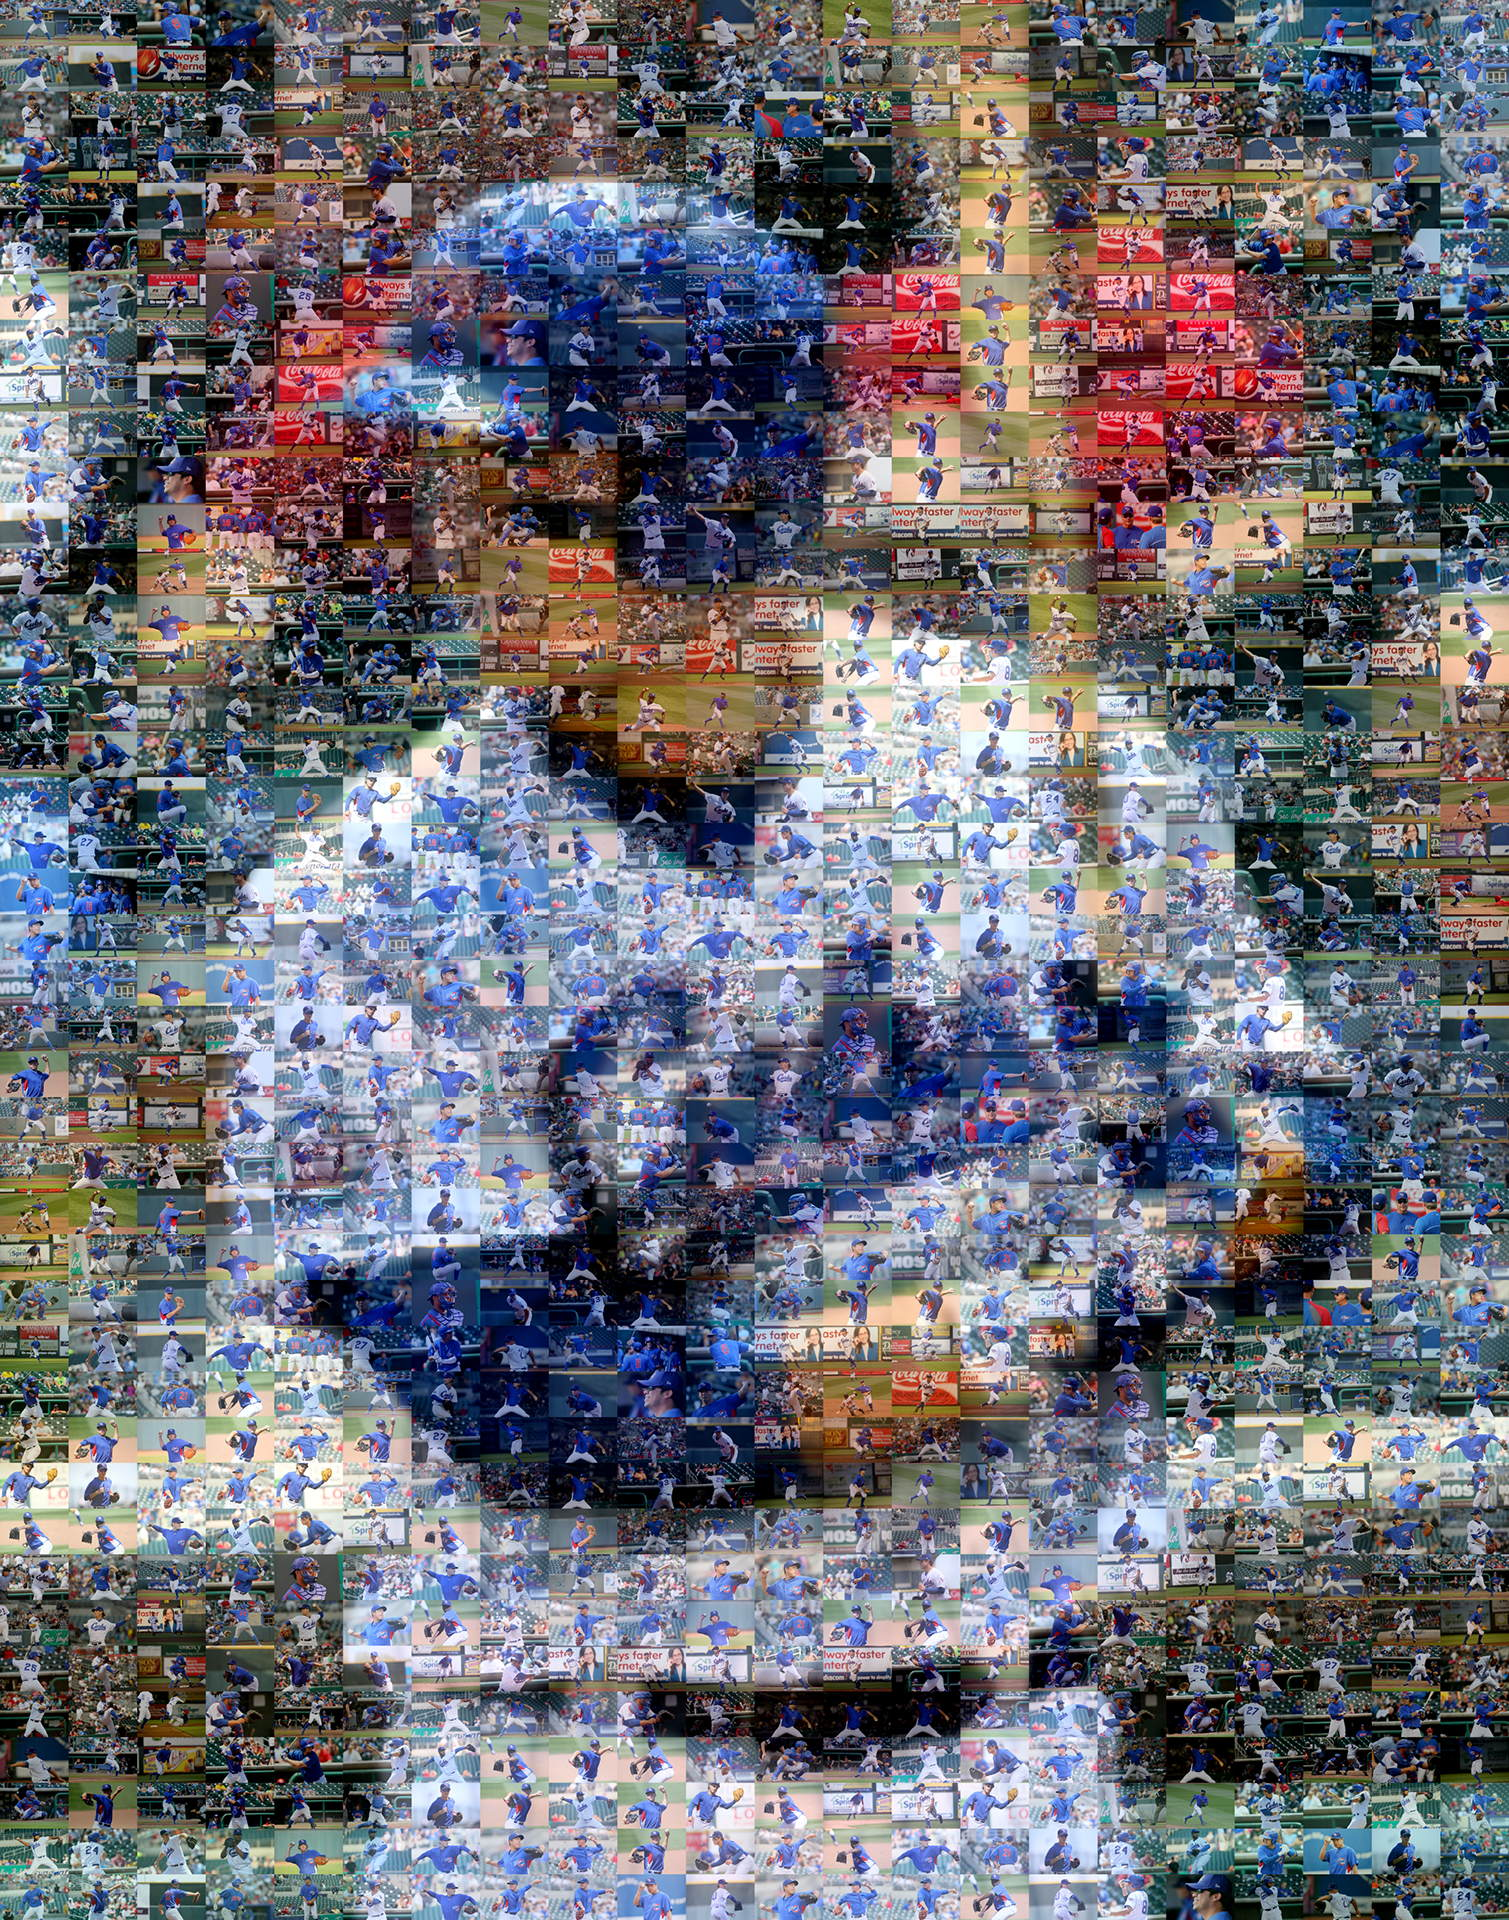 photo mosaic created using 203 photos of the Iowa Cubs